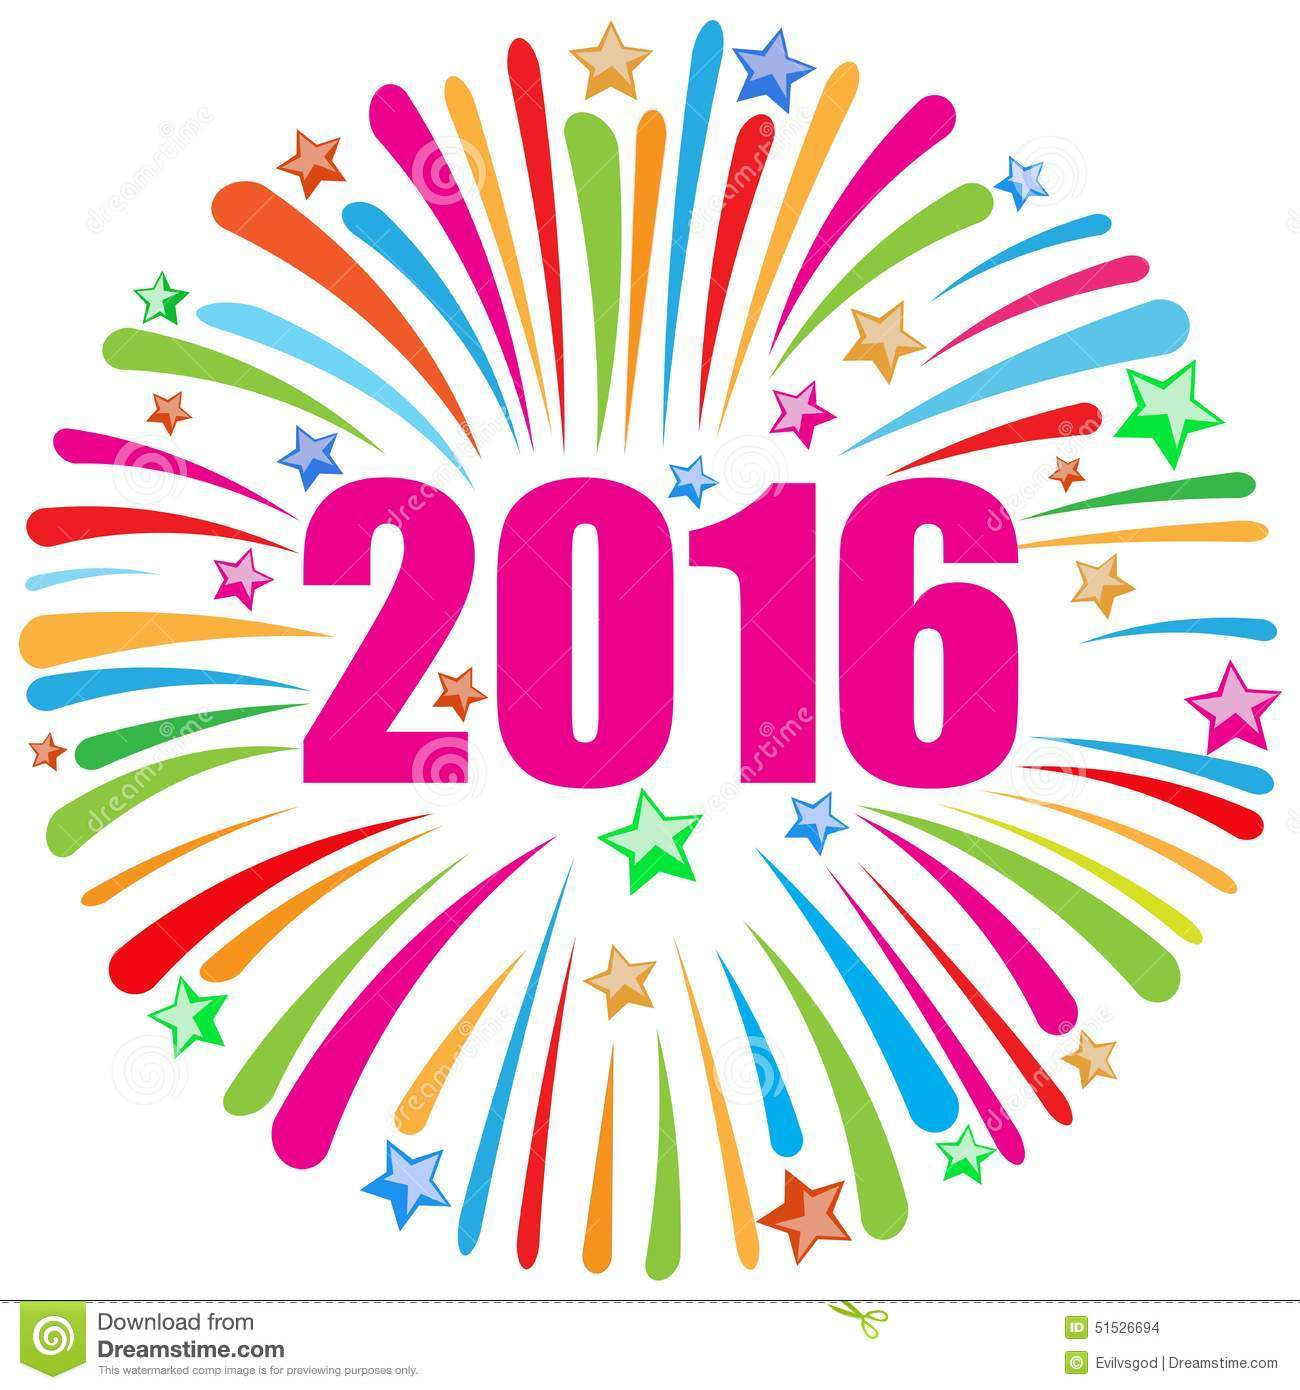 Happy new year 2016 available in vector format.